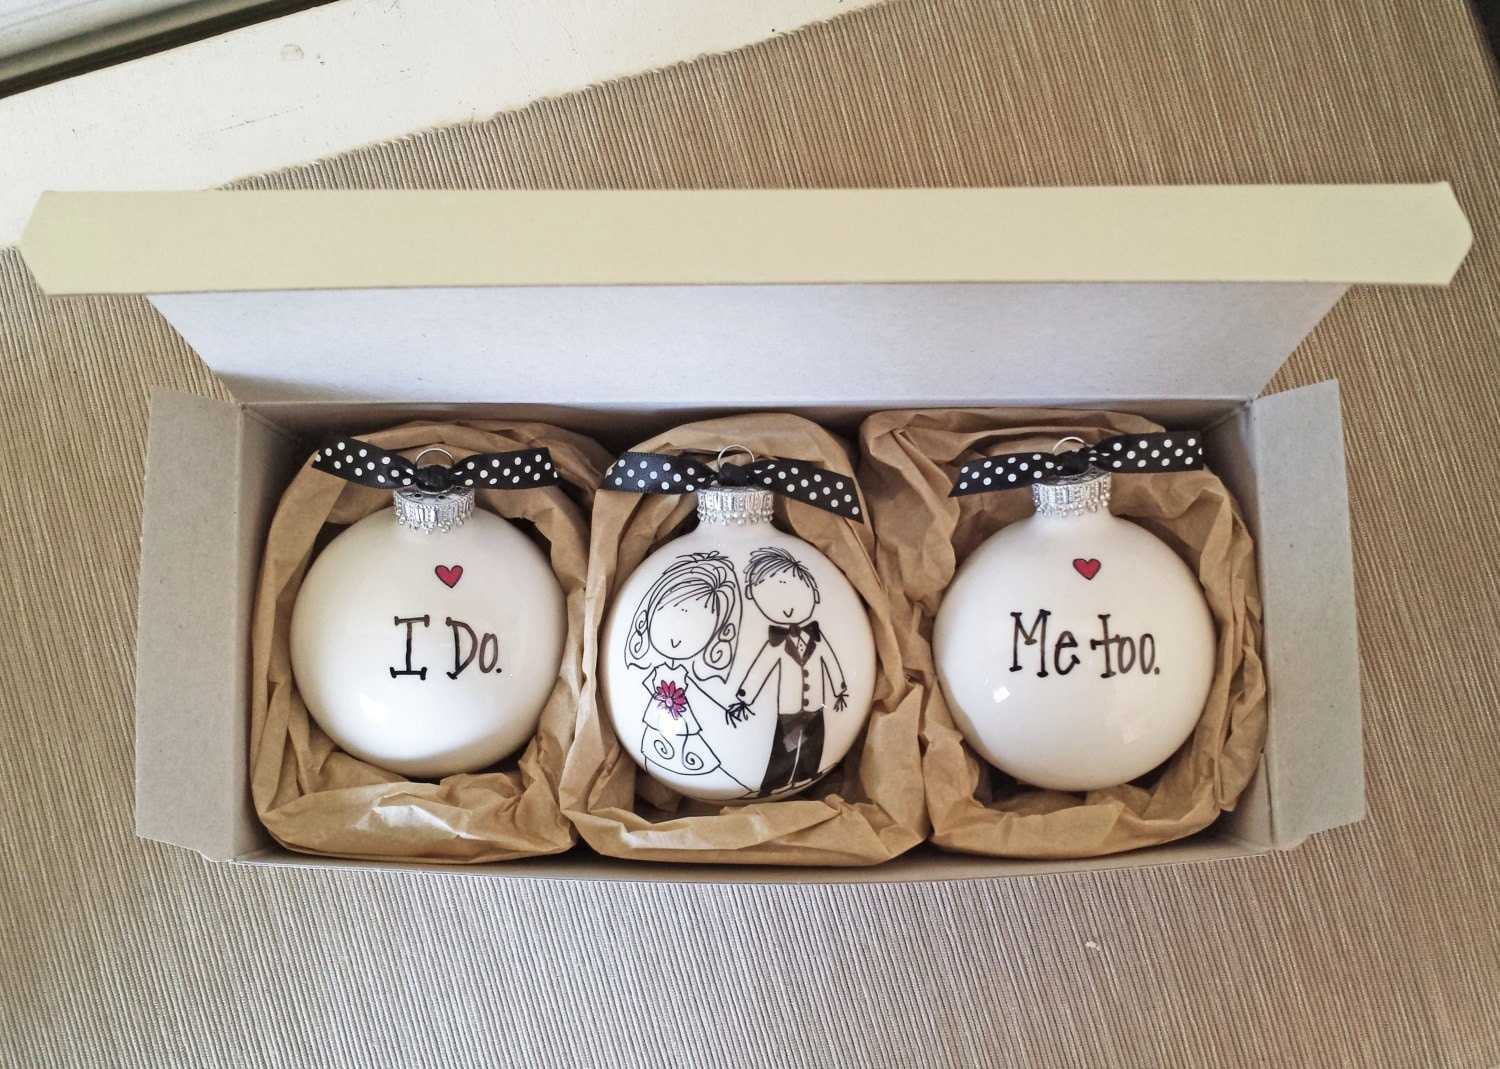 Wedding ornaments keepsake wedding gift personalized wedding for Wedding ornaments